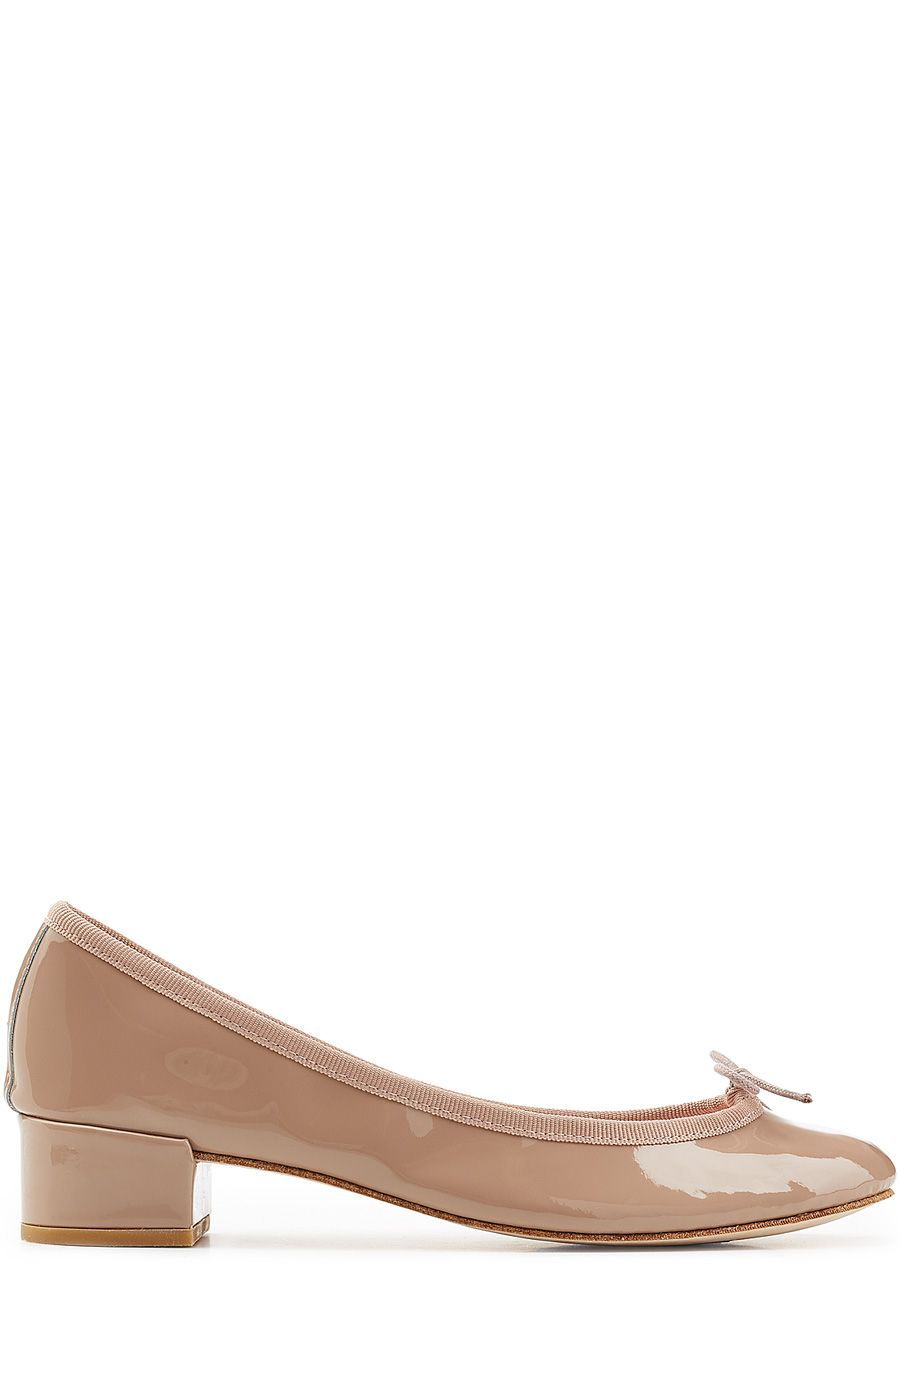 Repetto Patent Leather Pumps Visa Payment Cheap Online Buy Cheap 100% Authentic oqdFuOaDH